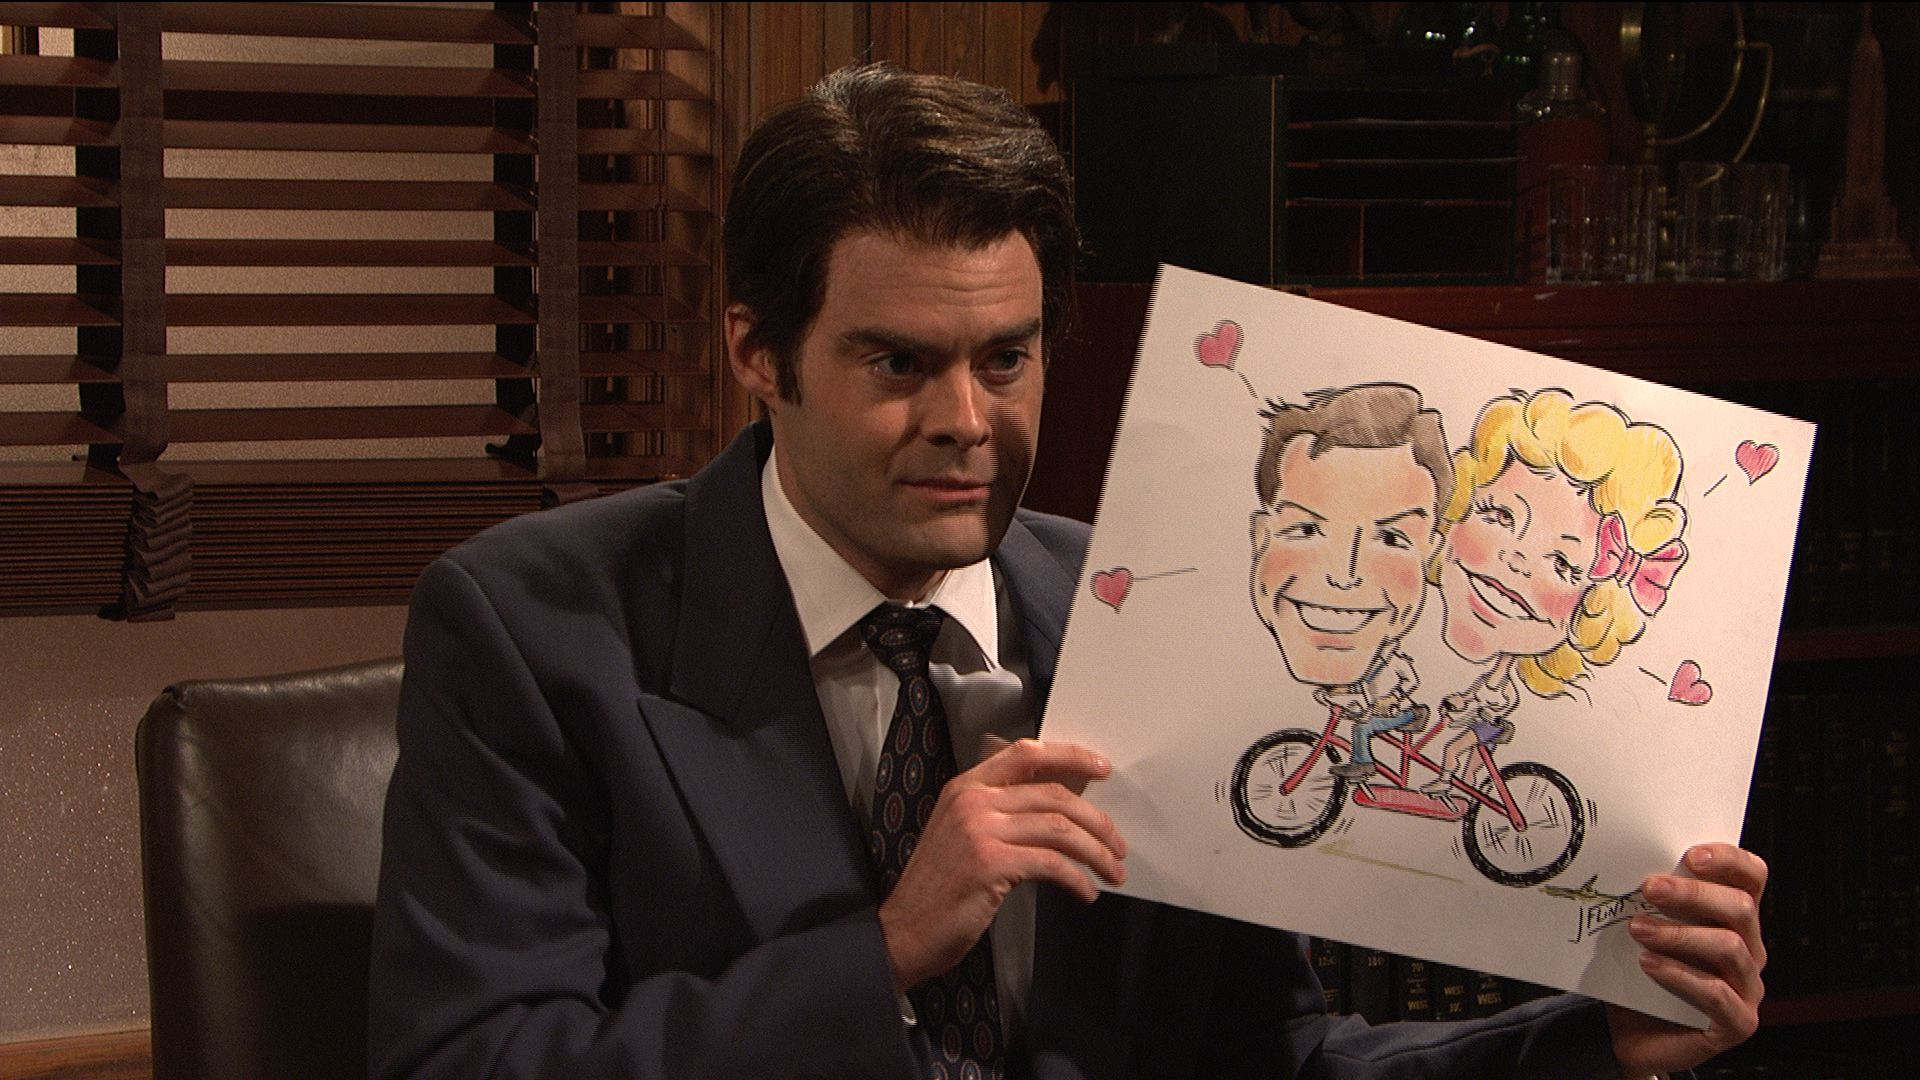 Hello My Name Is Simon And I Like To Do Drawings Snl Video